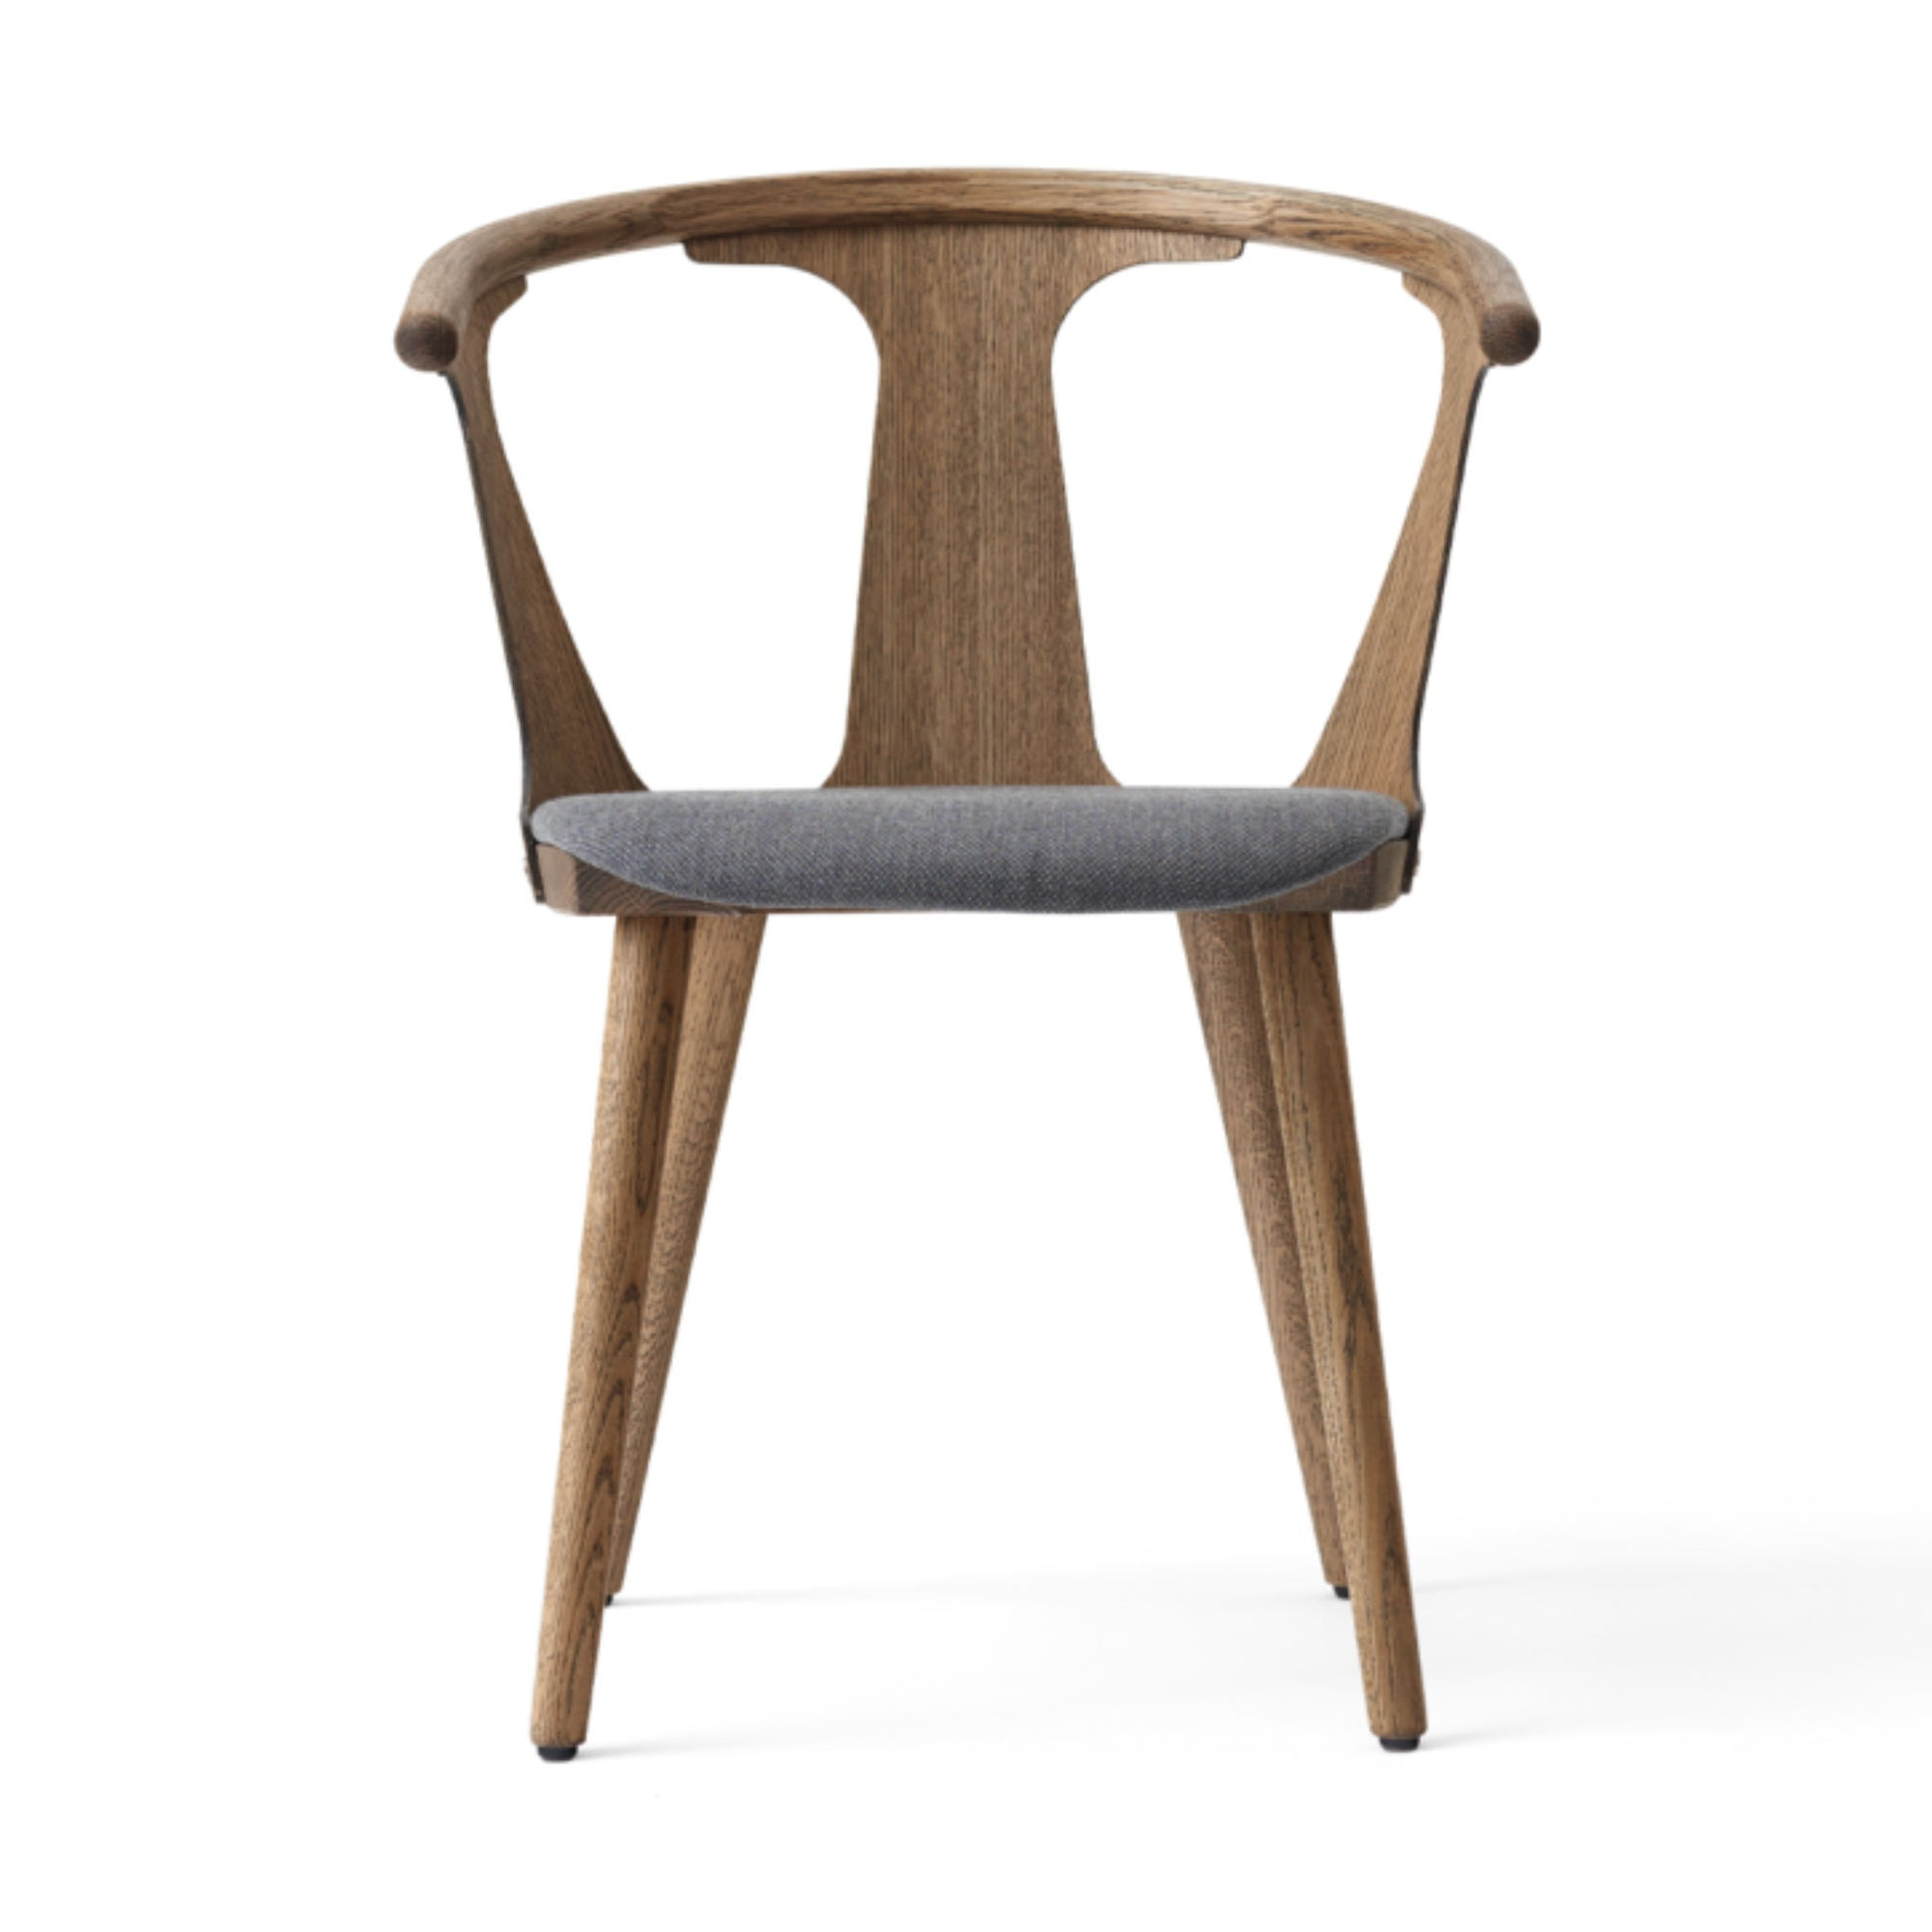 &Tradition SK2 In Between Chair , Fiord 171-Smoked Oiled Oak